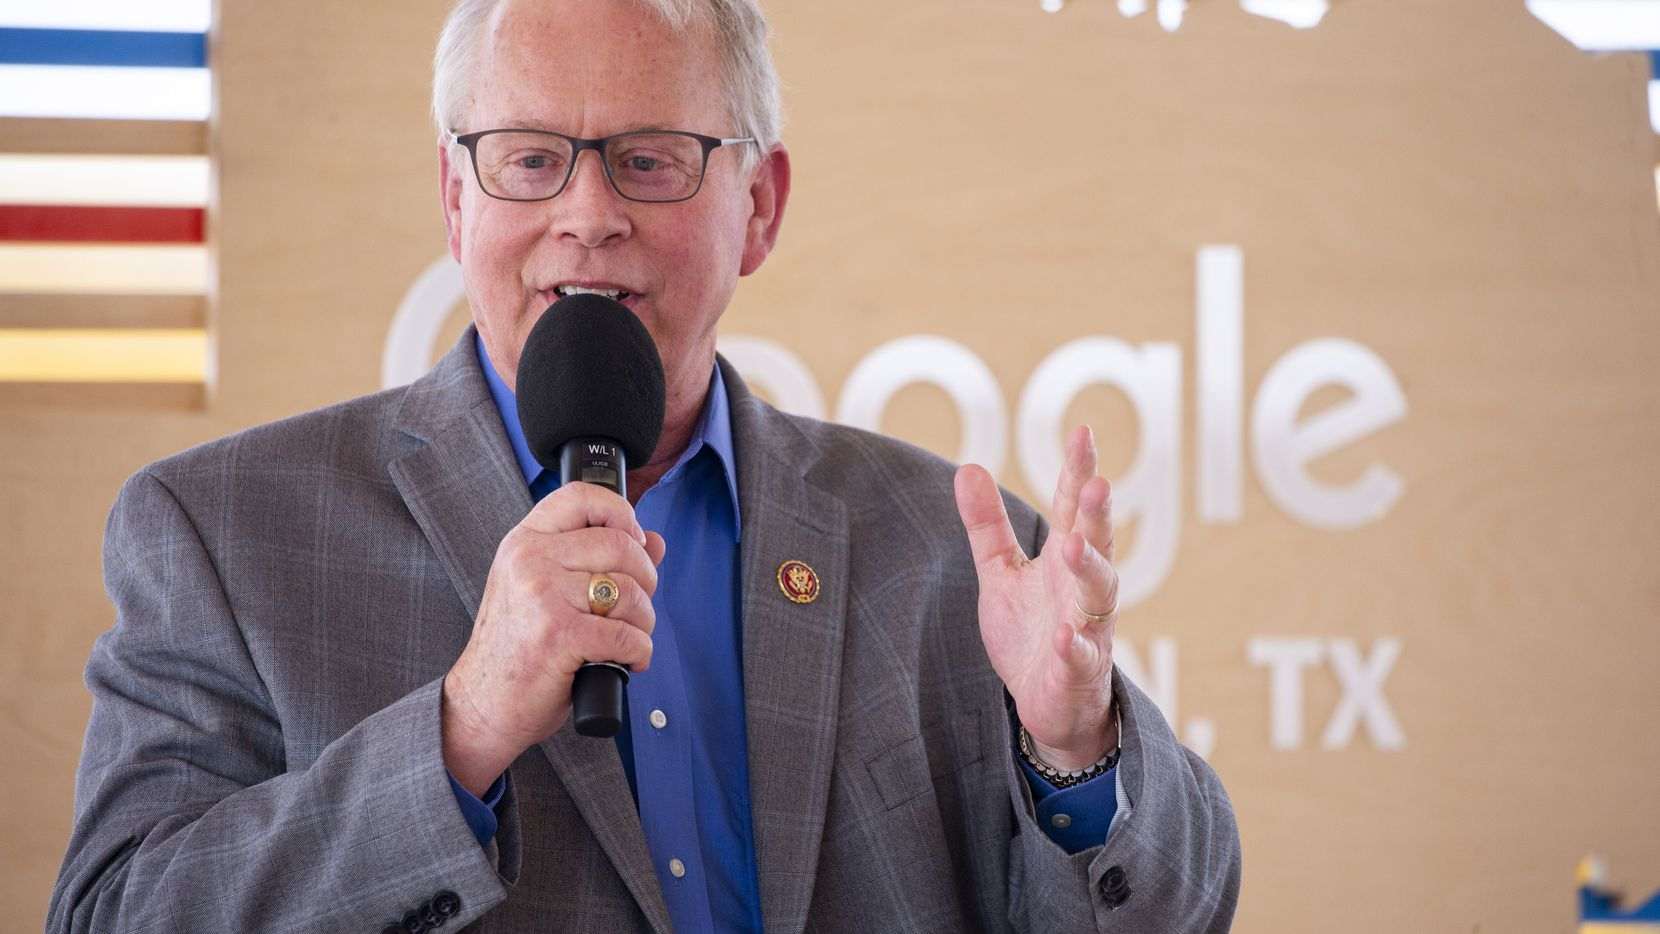 U. S. Representative Ron Wright gives remarks during an announcement of Google's new data center in Midlothian, Texas on Friday, June 14, 2019.  (Shaban Athuman/Staff Photographer)